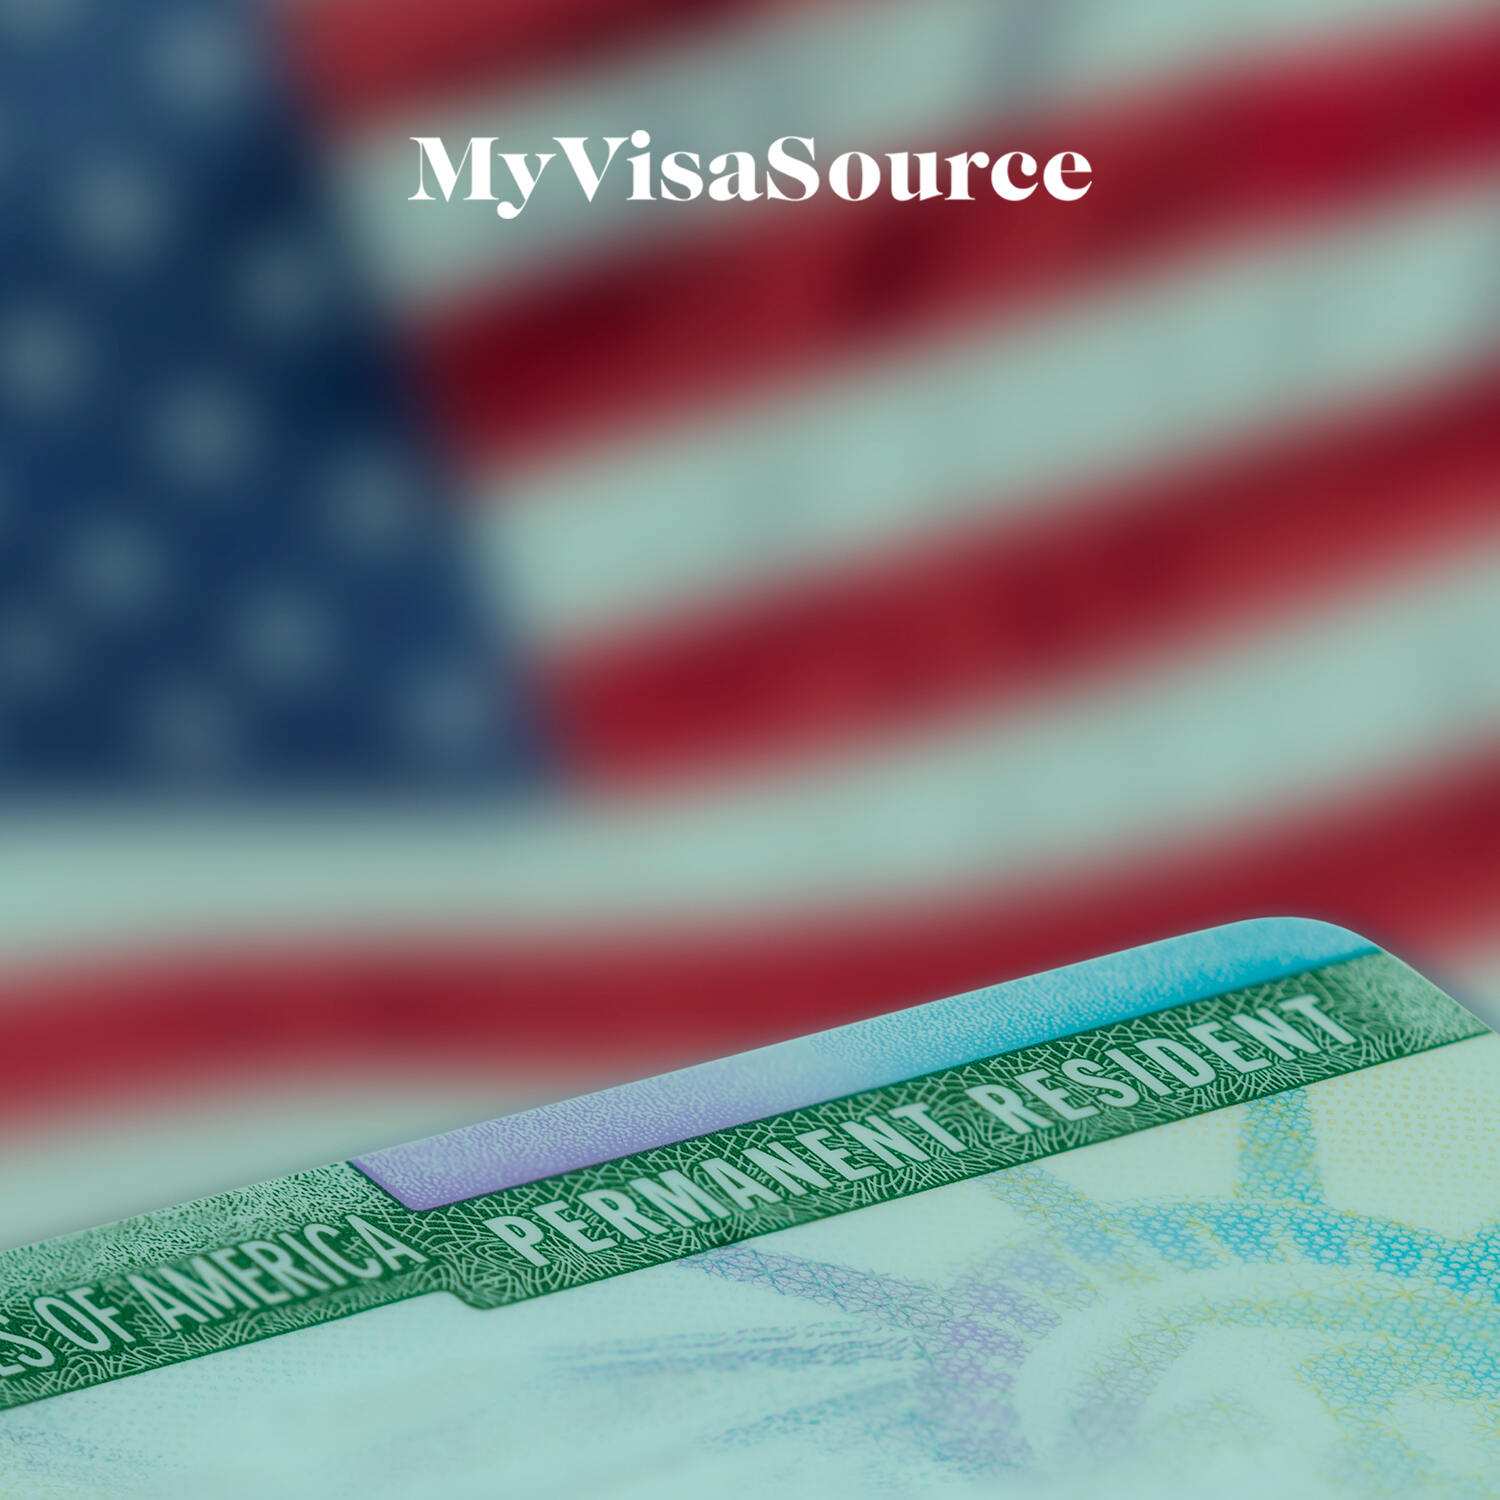 us permanent resident green card with a us flag background